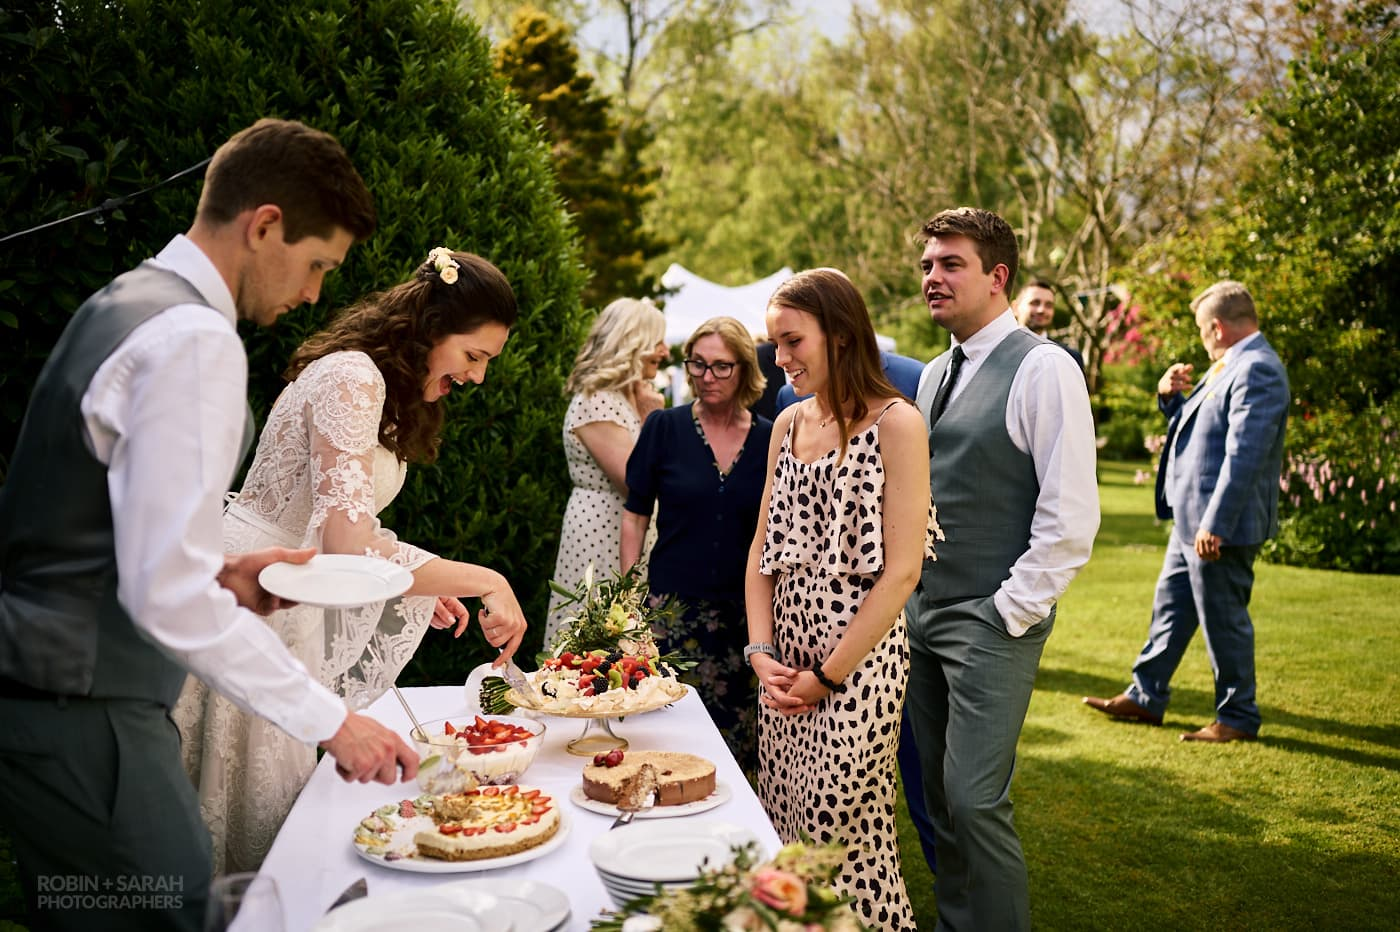 Bride and groom serve pudding to guests at small garden wedding